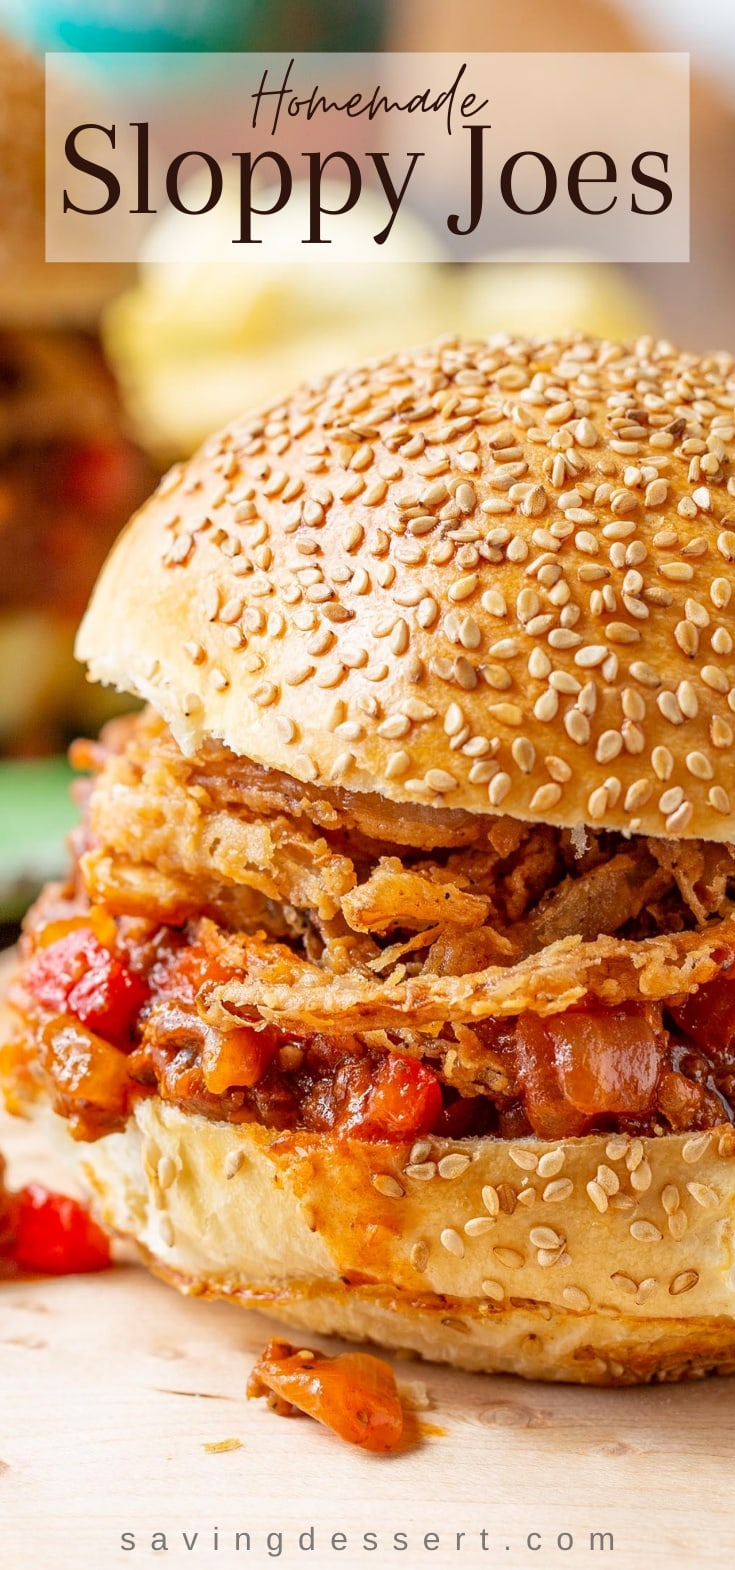 A close up of a sloppy joe sandwich topped with crispy onions on a toasted sesame seed bun